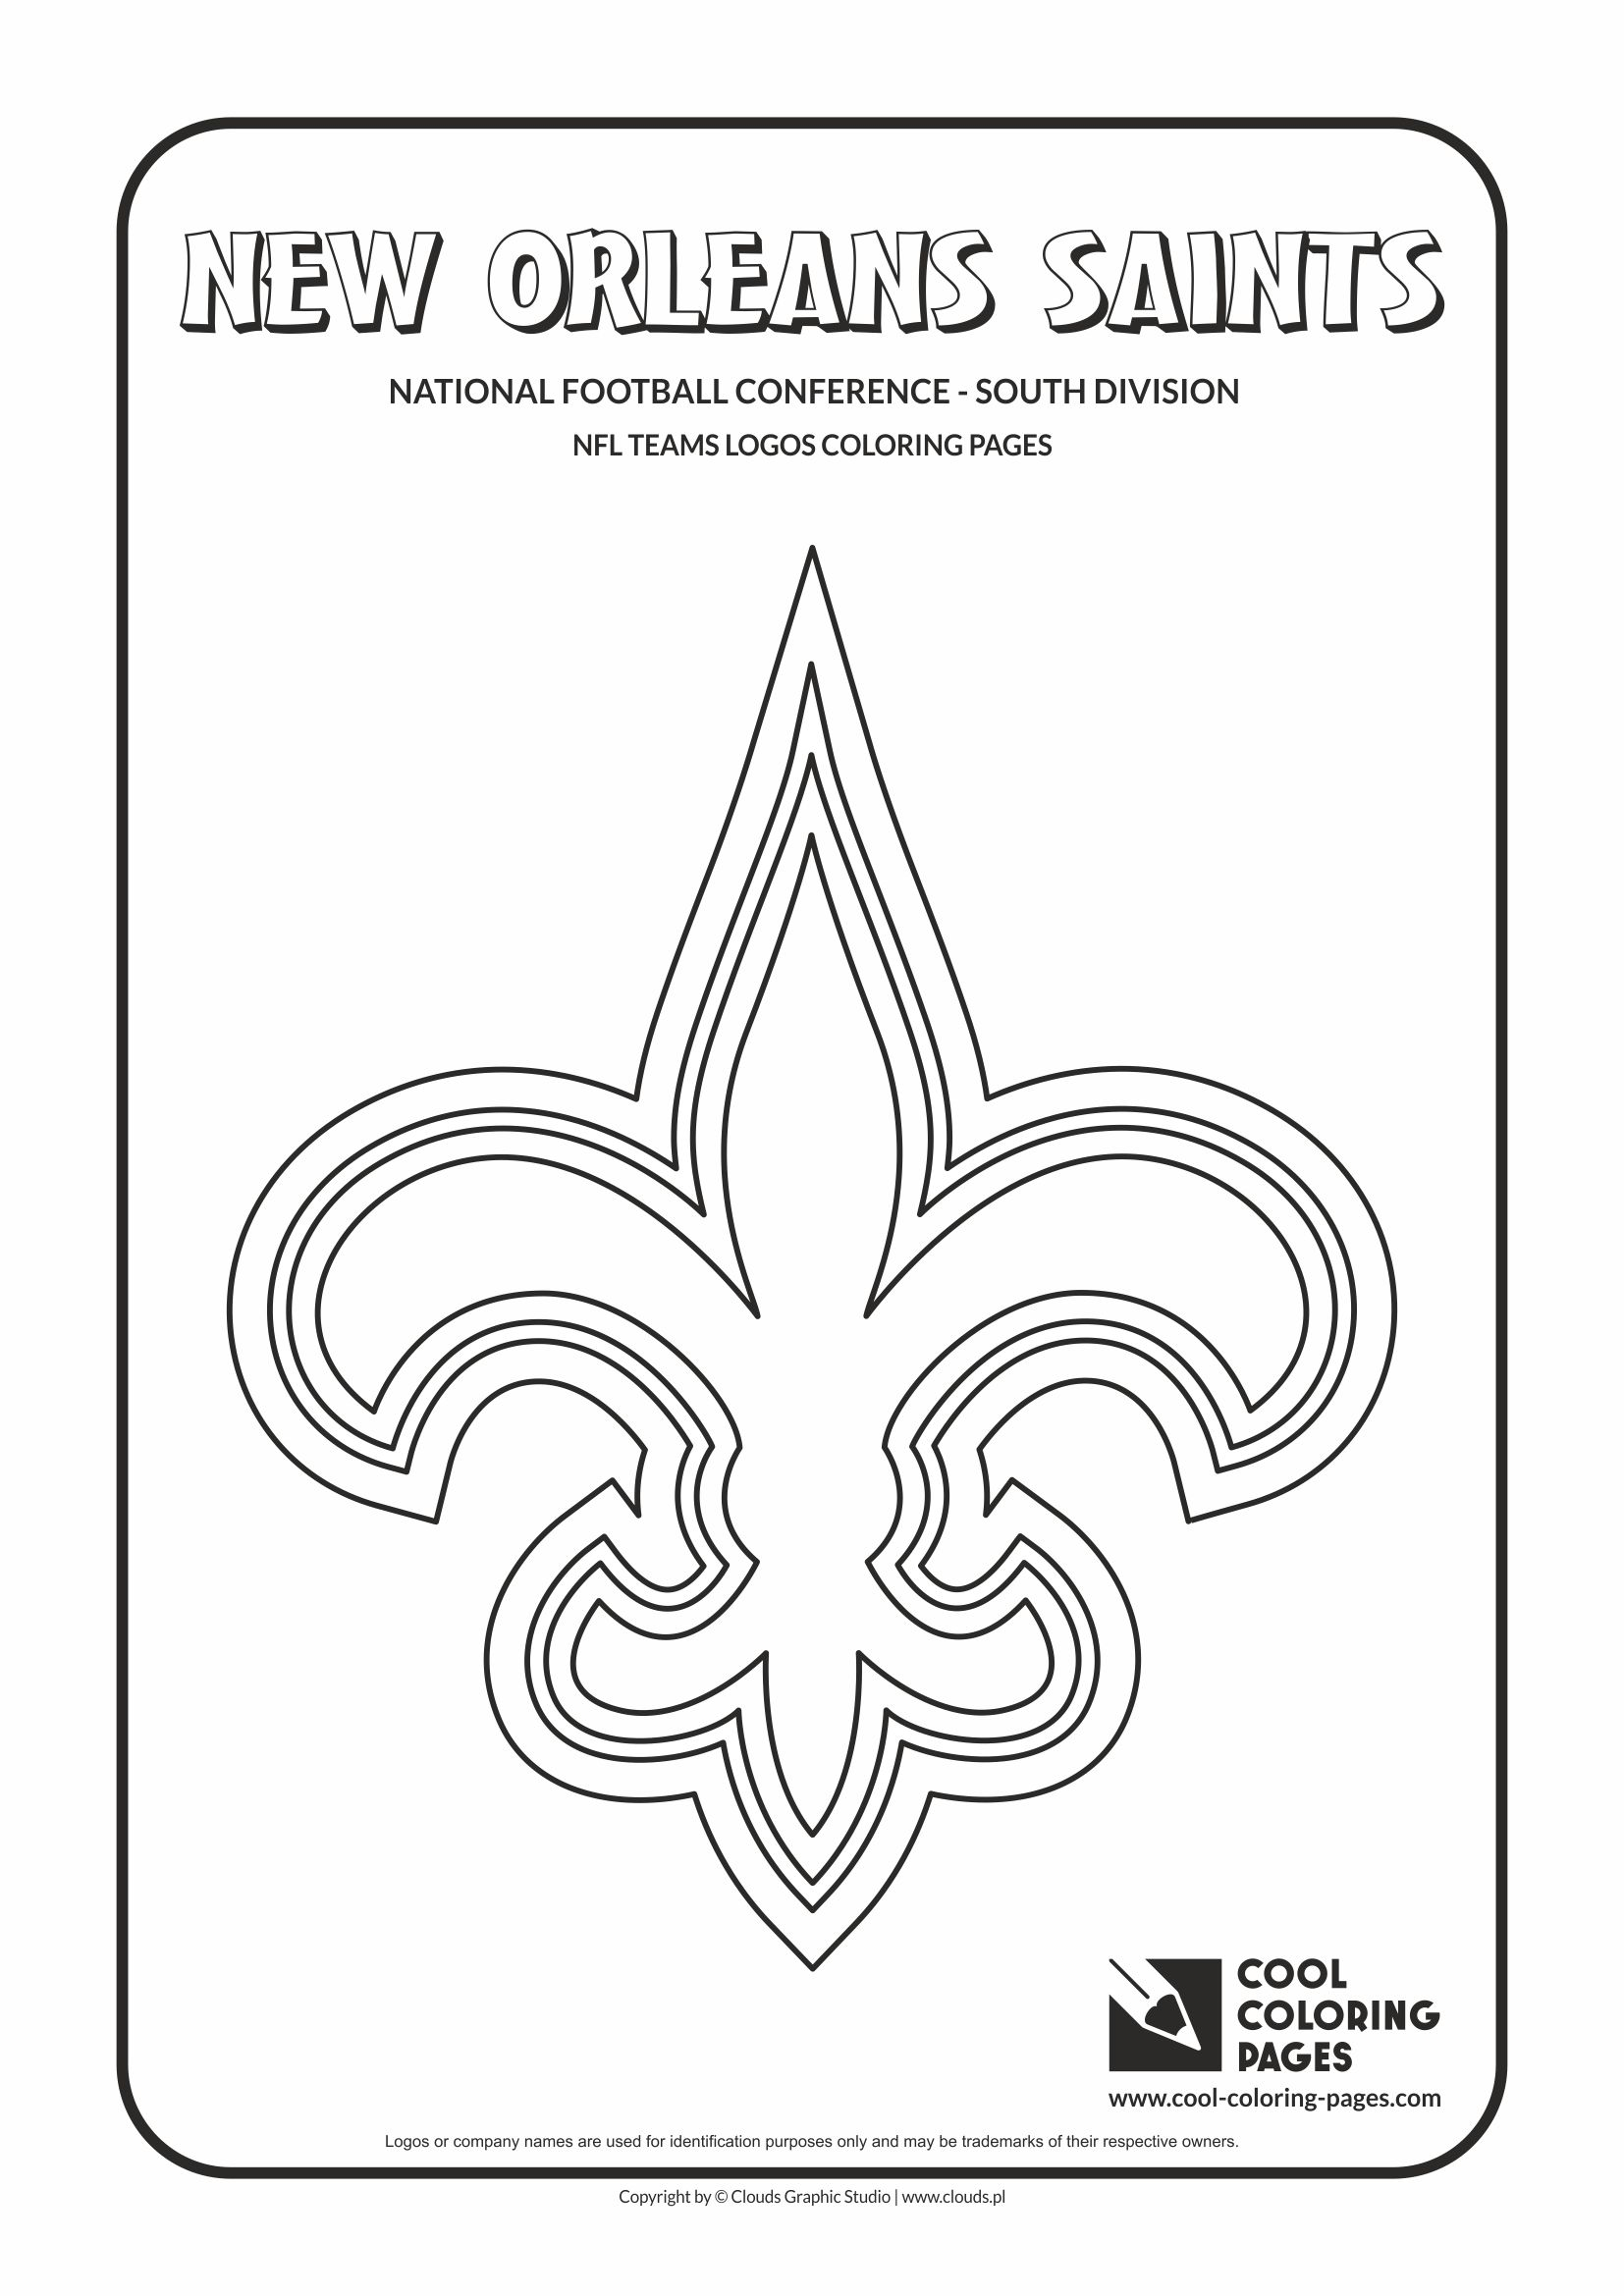 nfl logo coloring pages Cool Coloring Pages NFL teams logos coloring pages   Cool Coloring  nfl logo coloring pages